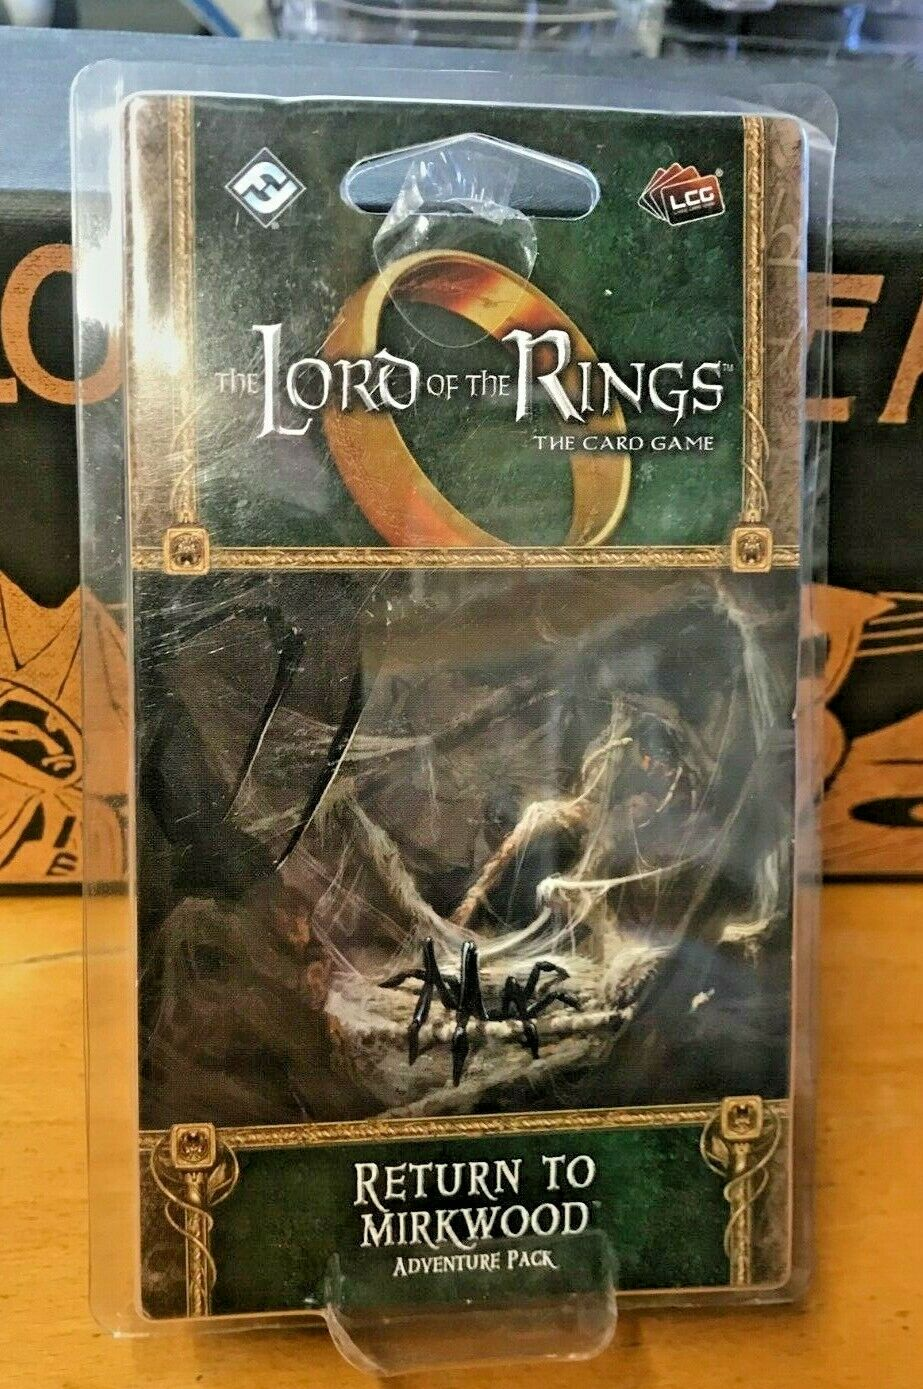 Return to Mirkwood Adventure Pack - Lord of the Rings LCG  - SofM v6